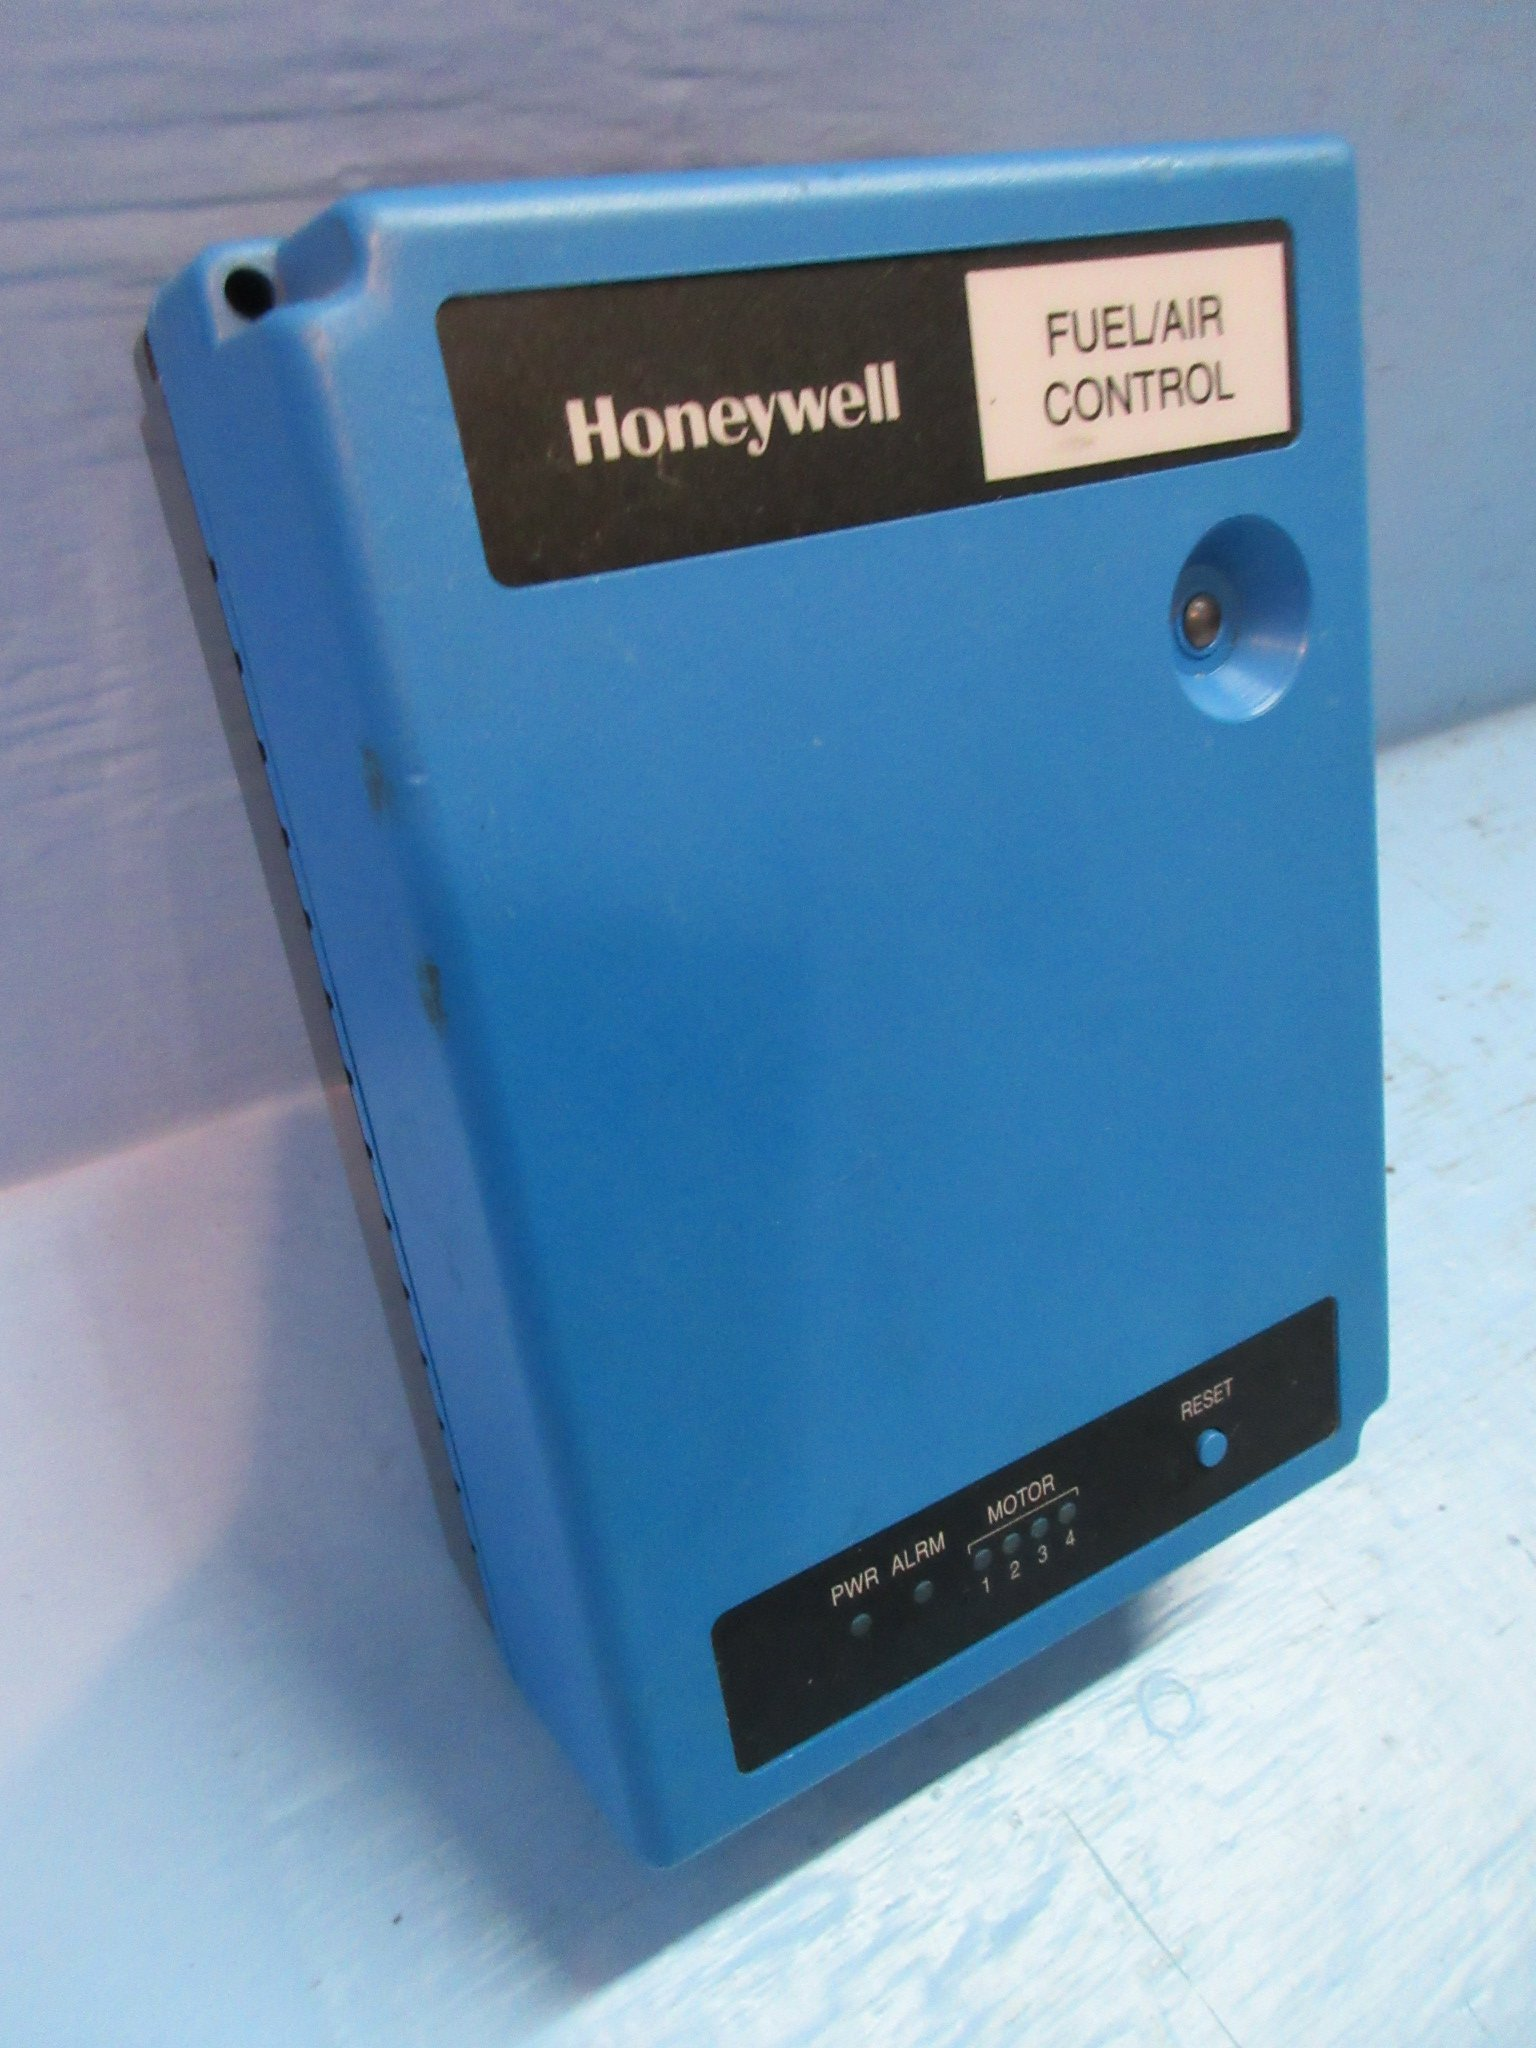 Honeywell, Inc. R7999A Controlinks Fuel Air Controller